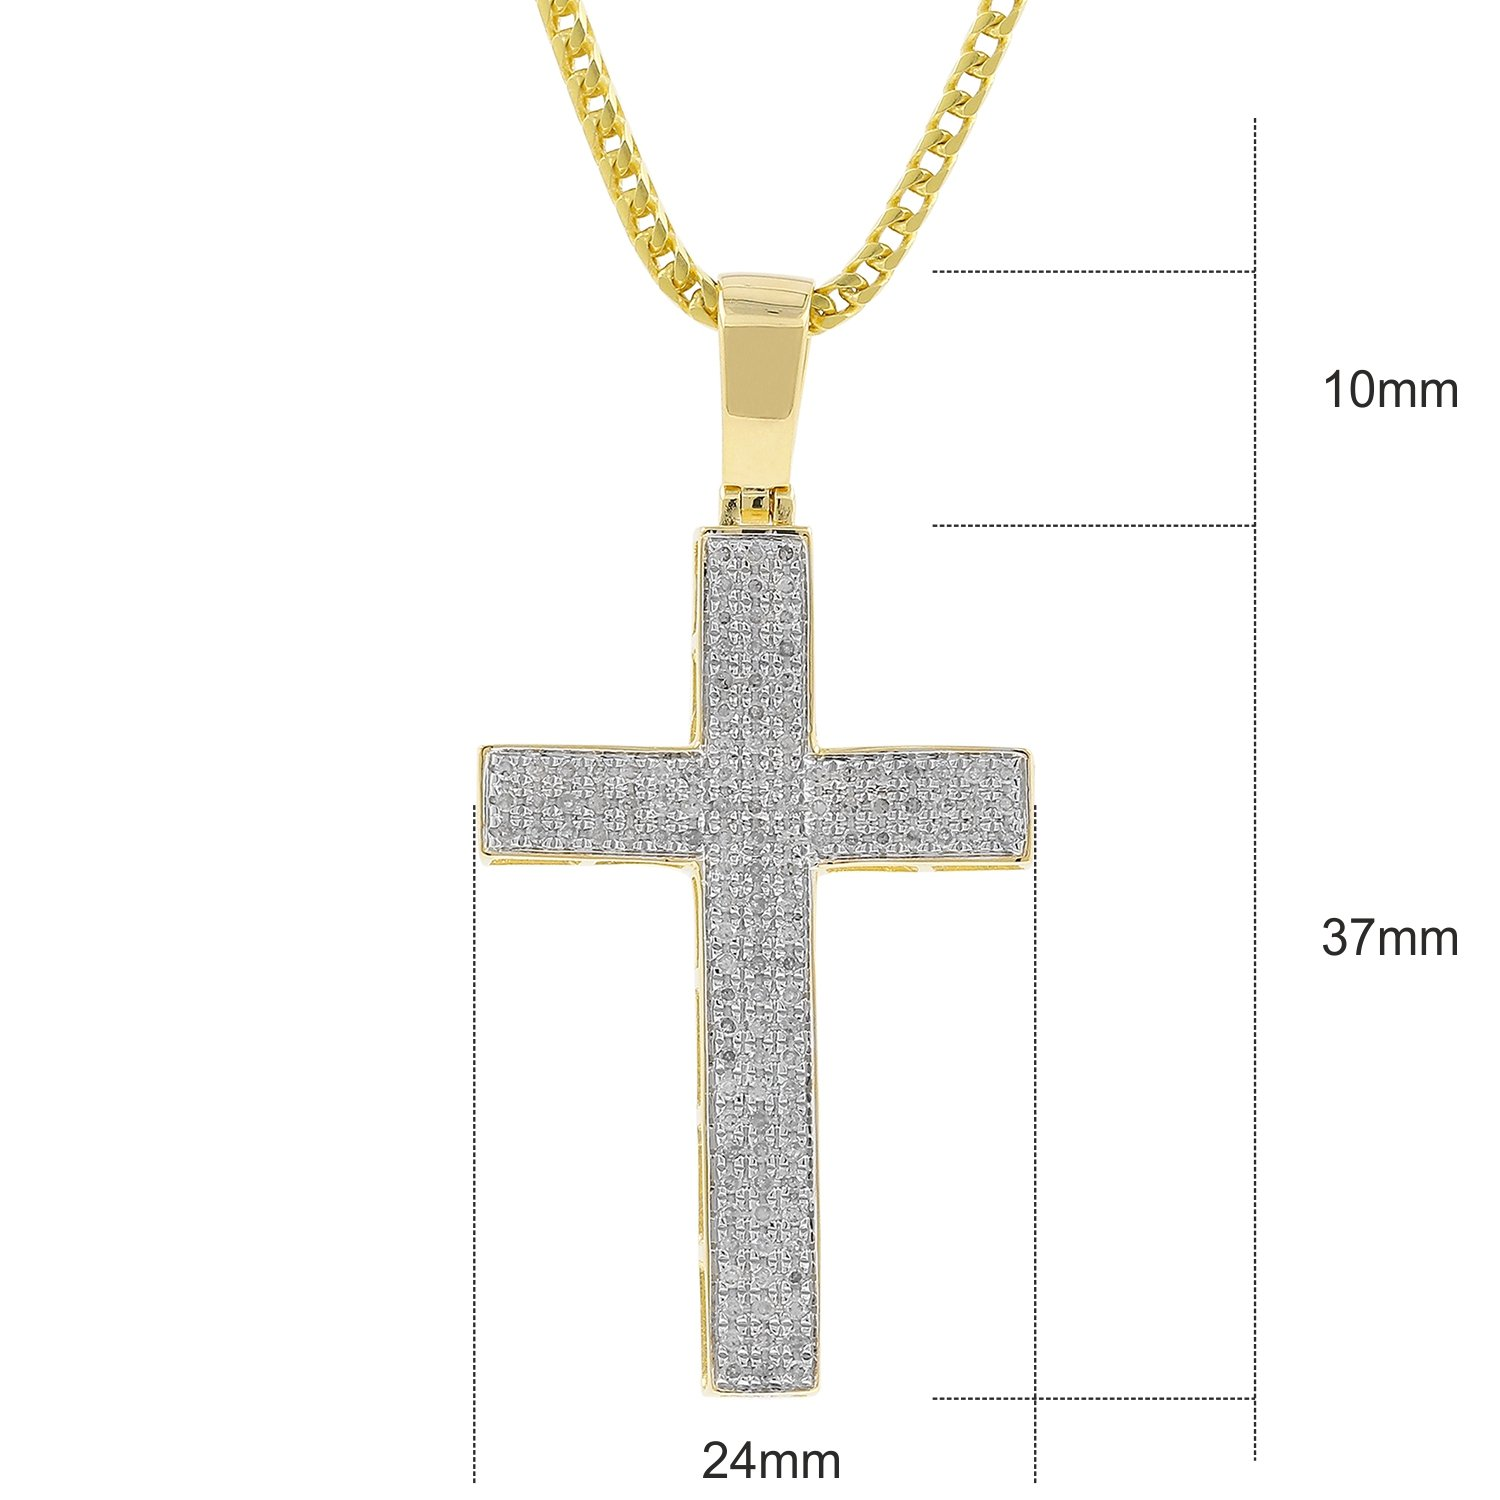 0.56ct Diamond Pave 3 Row Mens Hip Hop Cross Pendant Necklace in Yellow Gold Over 925 Silver (I-J, I2-I3) by Isha Luxe-Hip Hop Bling (Image #2)